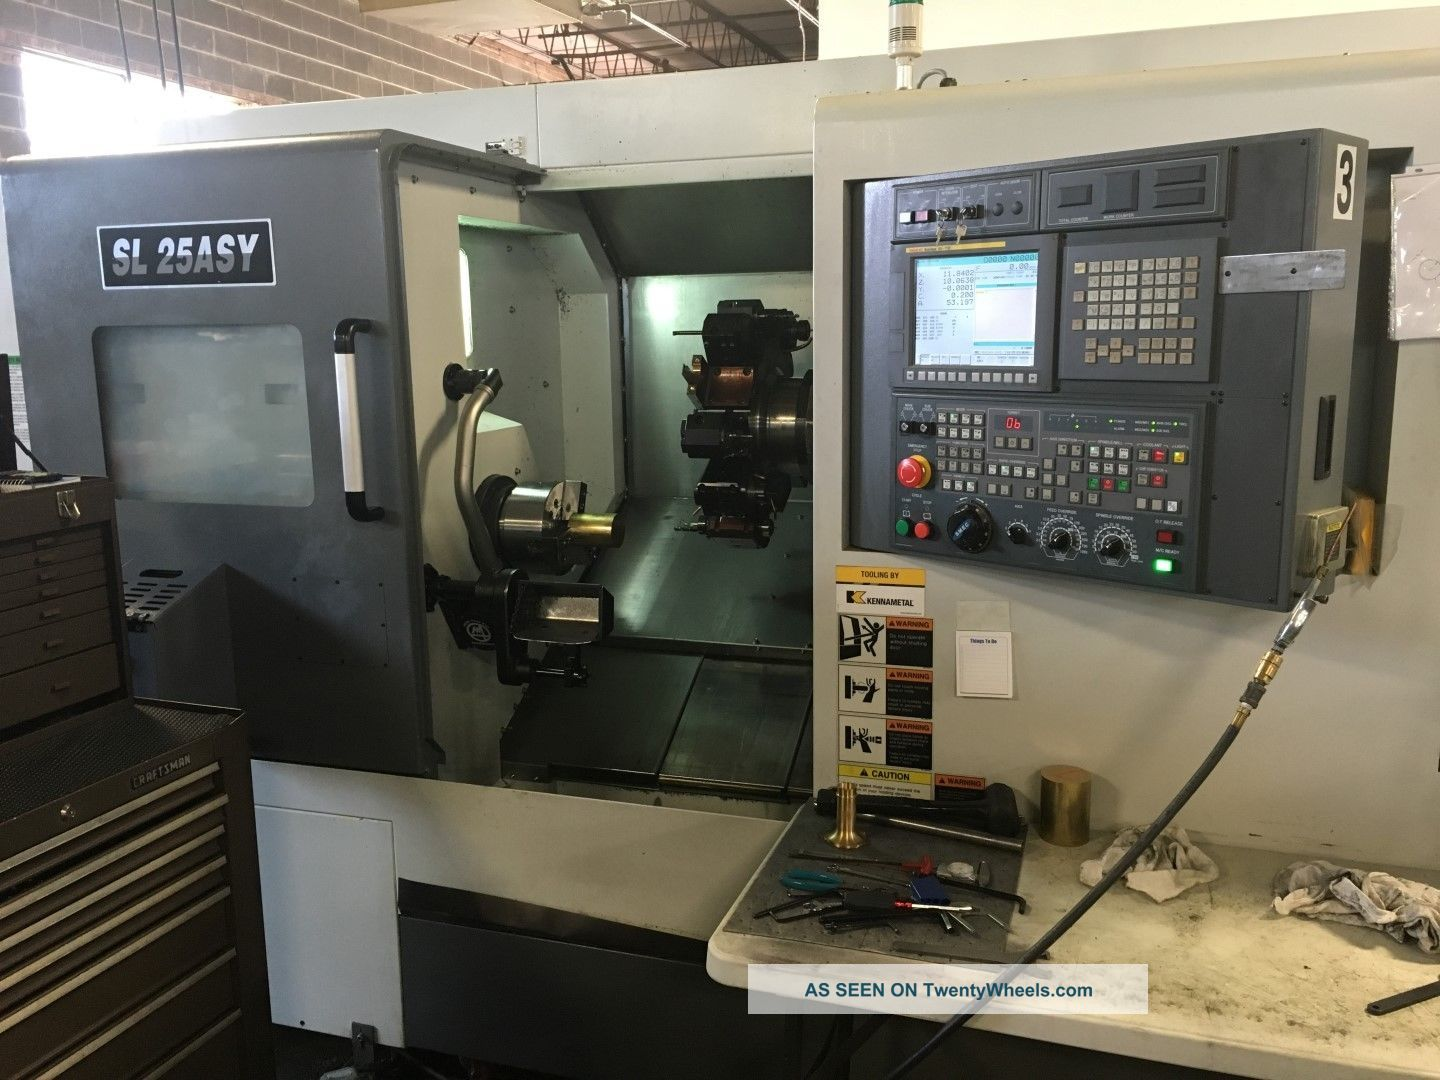 Samsung Sl - 25 Asy Cnc Live Tool Turning Center Lathe Fanuc Sub Y Axis 2013 Metalworking Lathes photo